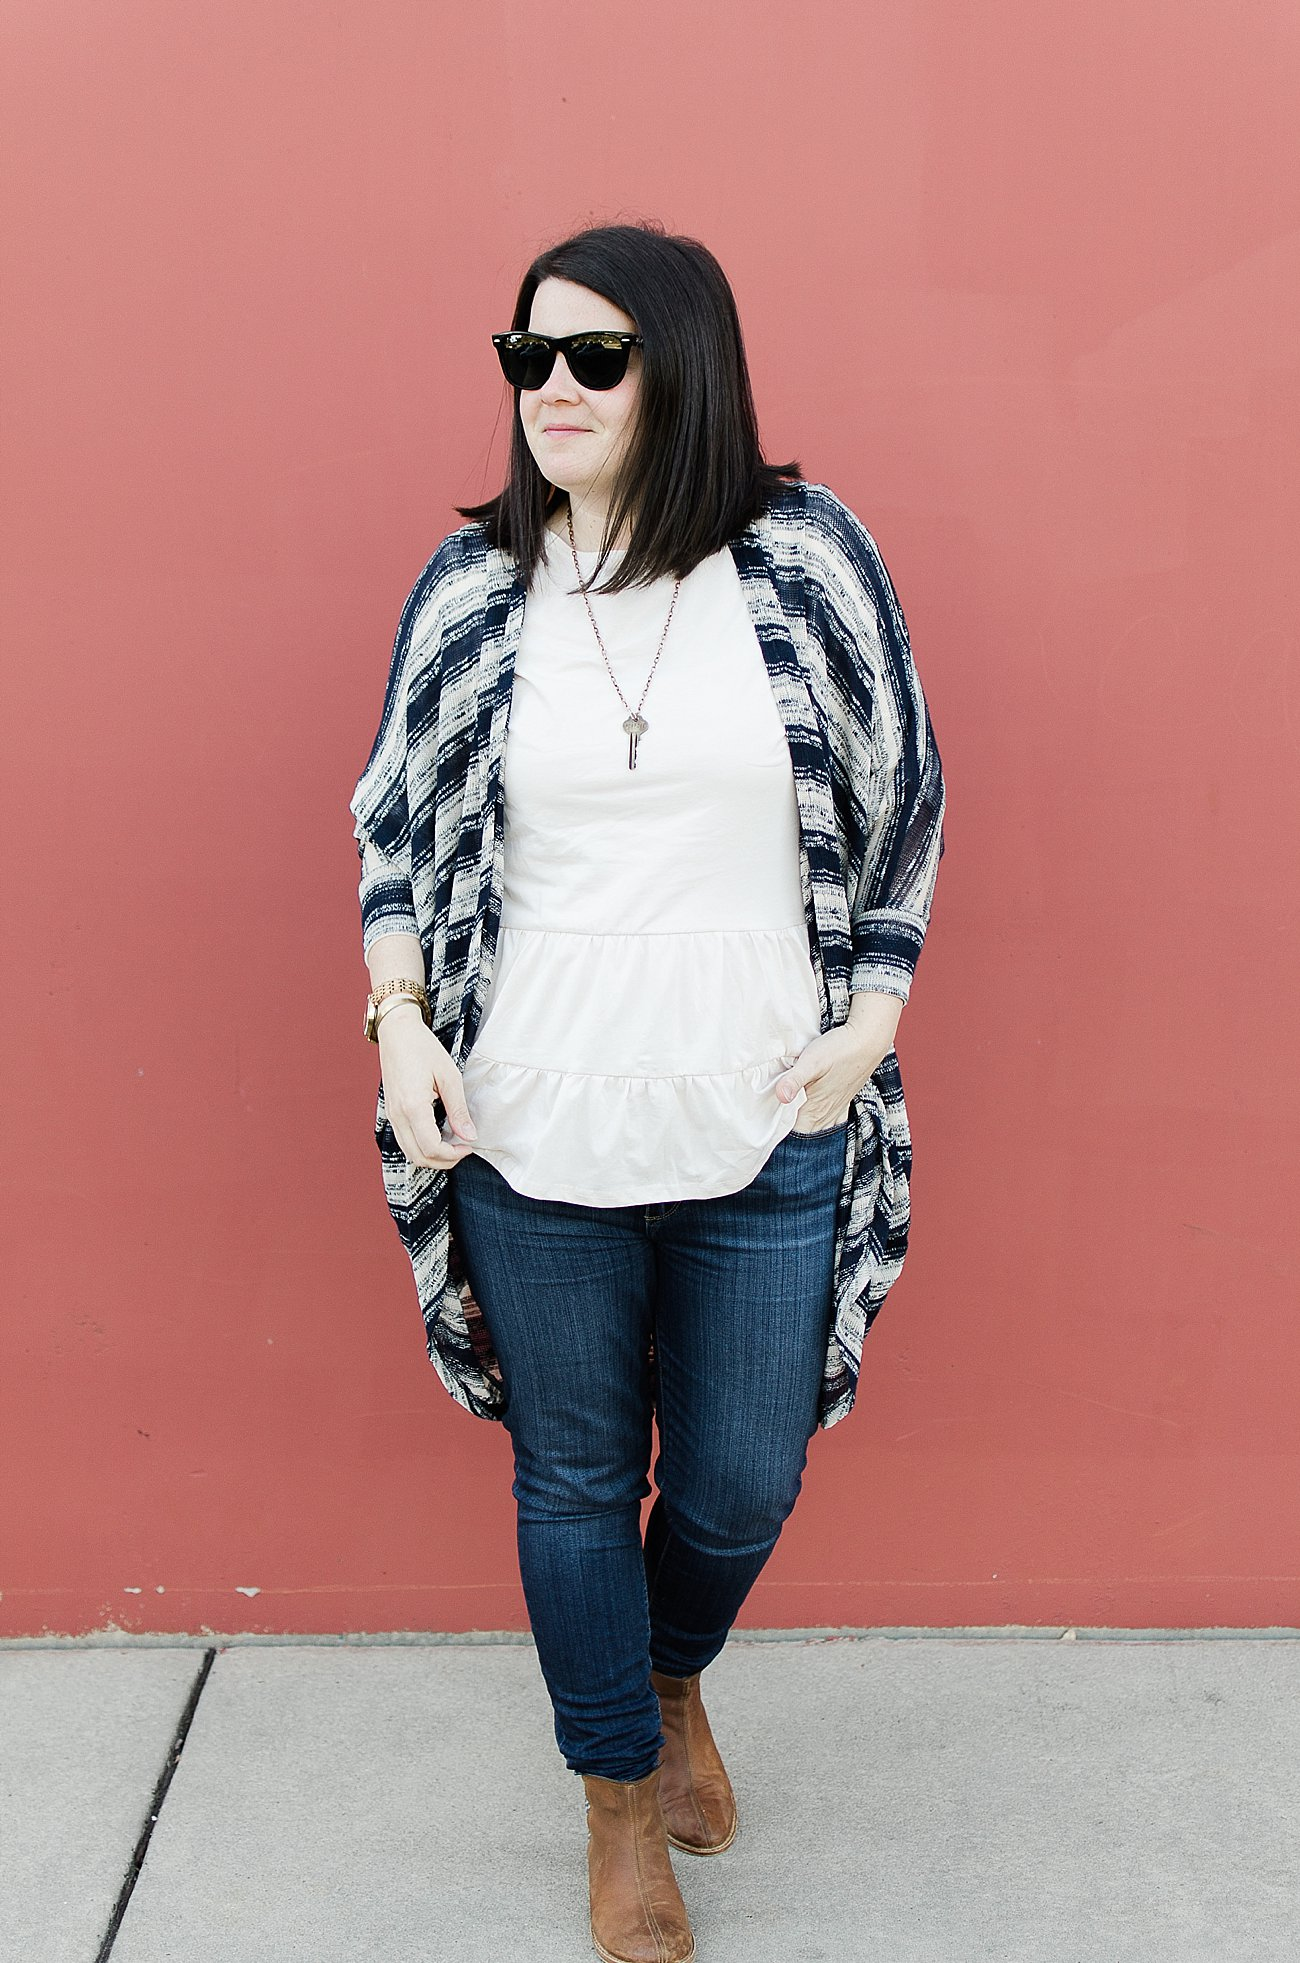 The Giving Keys, The Flourish Market, Elegantees, Paige Denim, The Root Collective booties | Ethical Fashion, fall style (2)